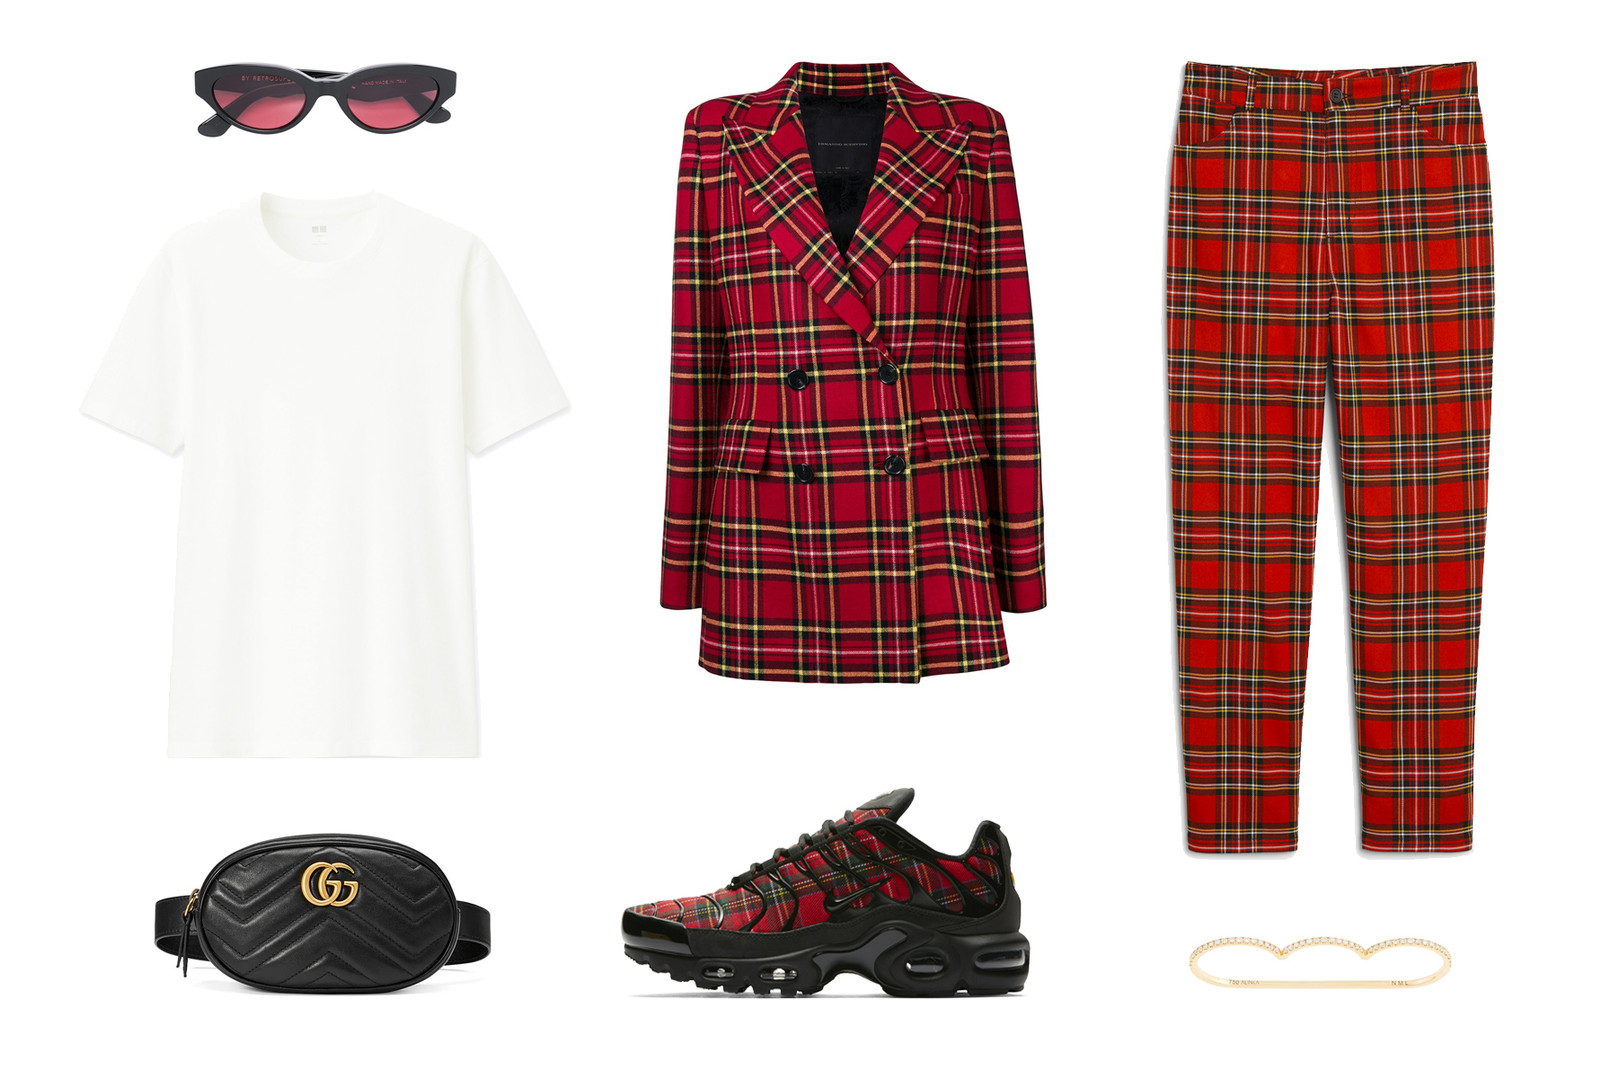 Red Tartan Print Sneaker Nike Gucci Suit Look How To Style Inspiration Fashion Outfit Inspo Blazer Trousers